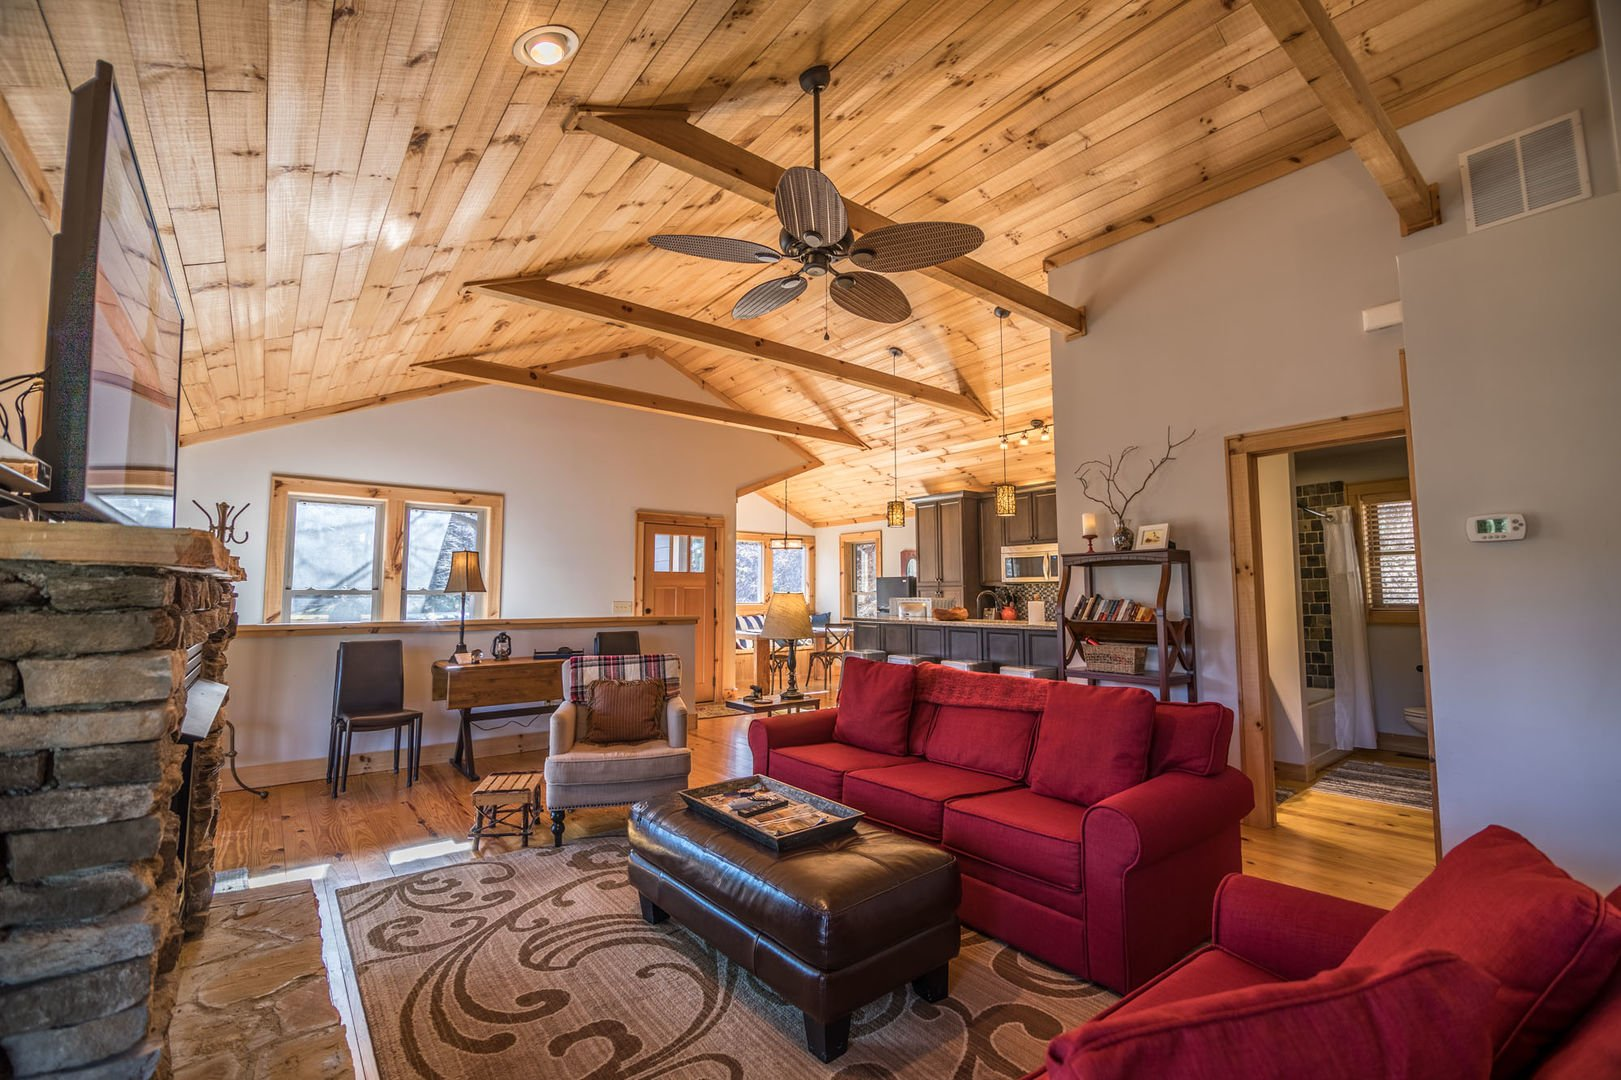 Main level living room area with furniture around a gas log fireplace